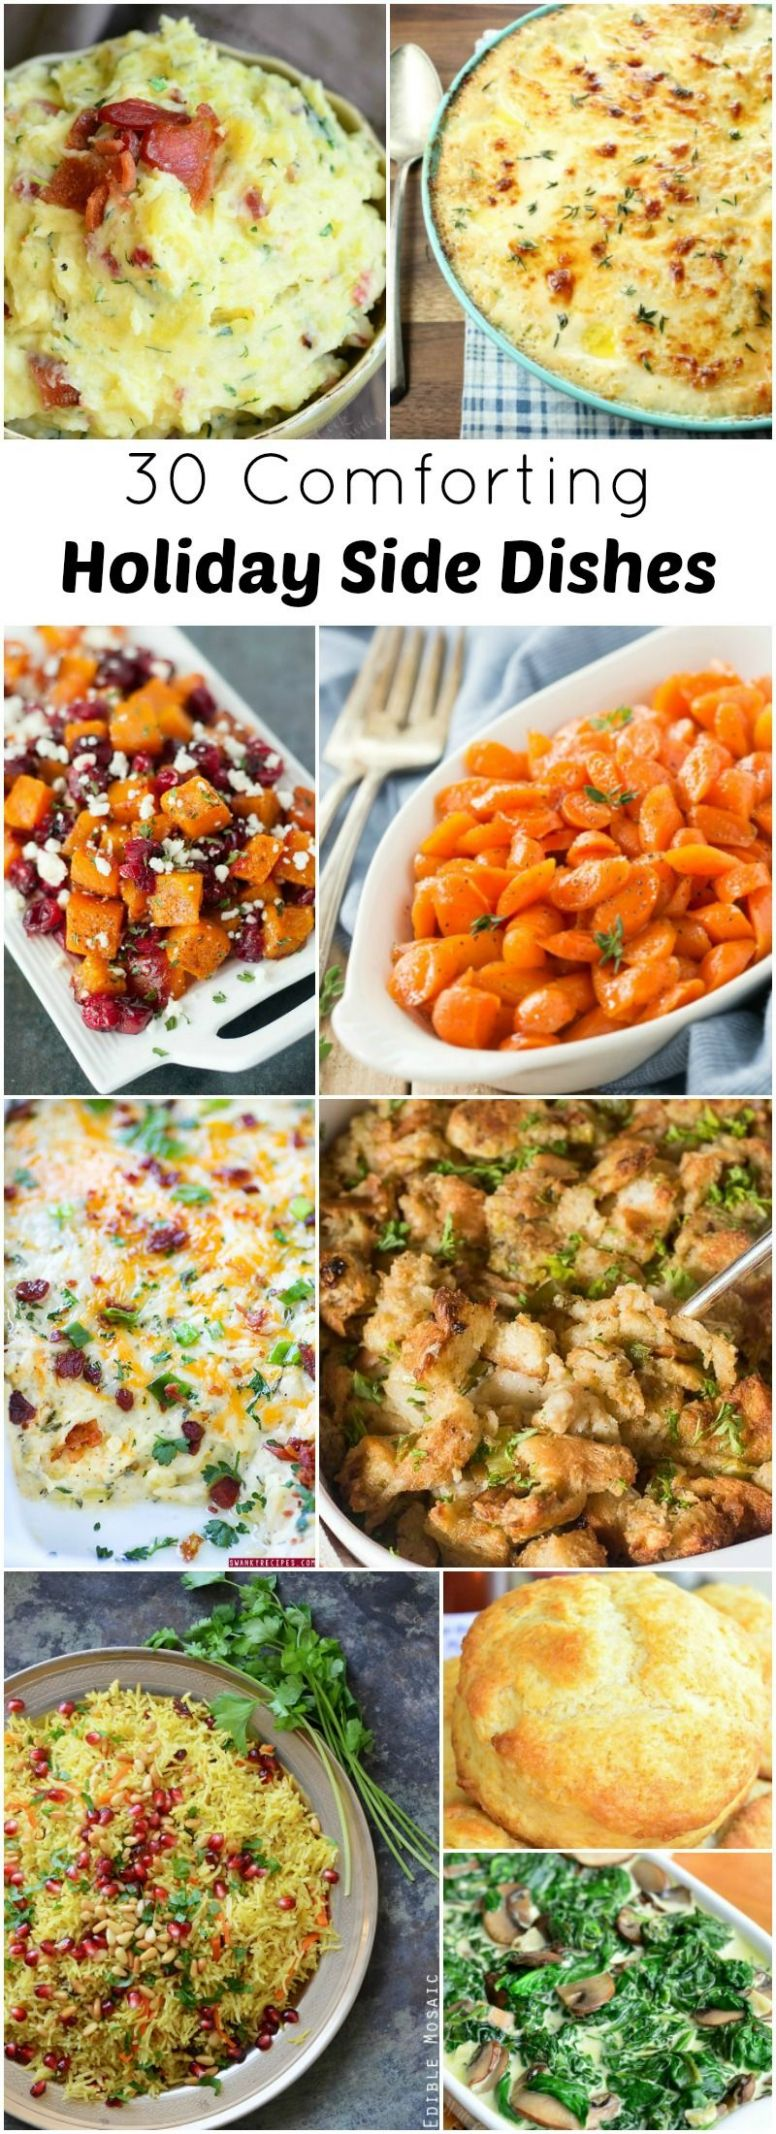 12 Comforting Holiday Side Dishes | Holiday side dishes ..